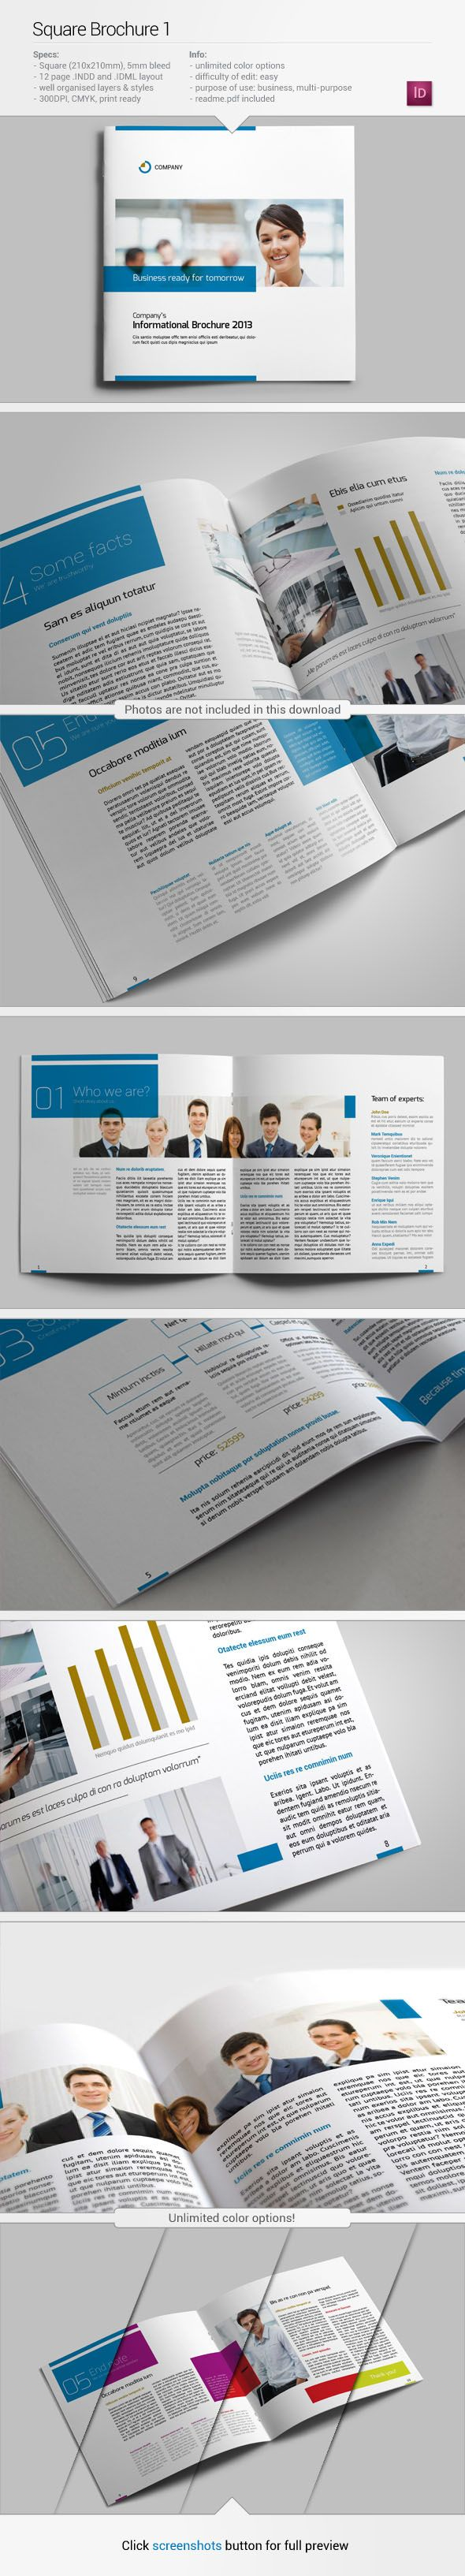 Square Brochure 1 | Visit source for better preview :)